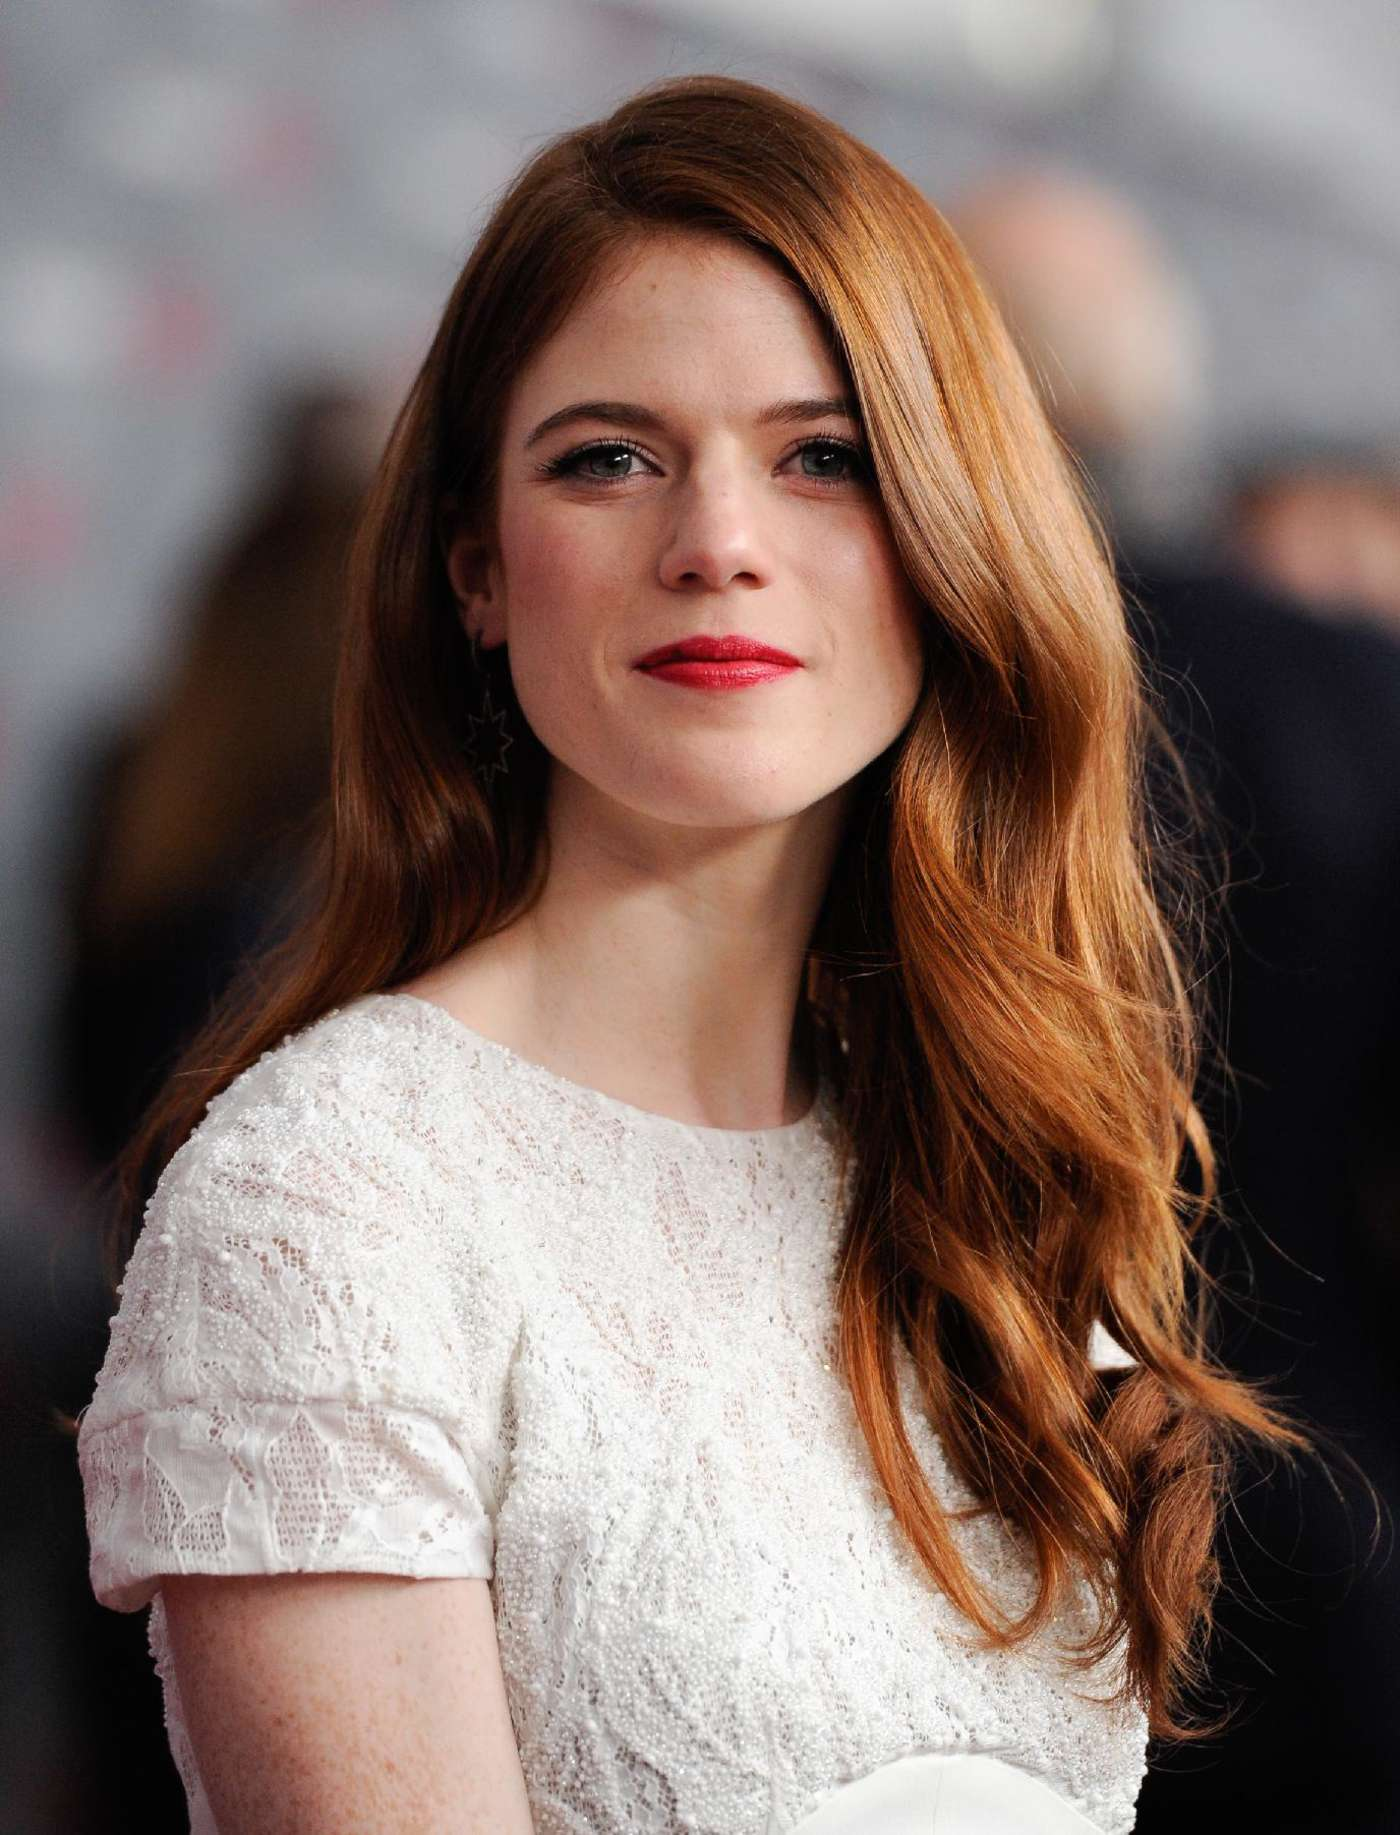 The 30-year old daughter of father Sebastian Arbuthnot-Leslie and mother Candida Mary Sibyl Leslie, 168 cm tall Rose Leslie in 2017 photo